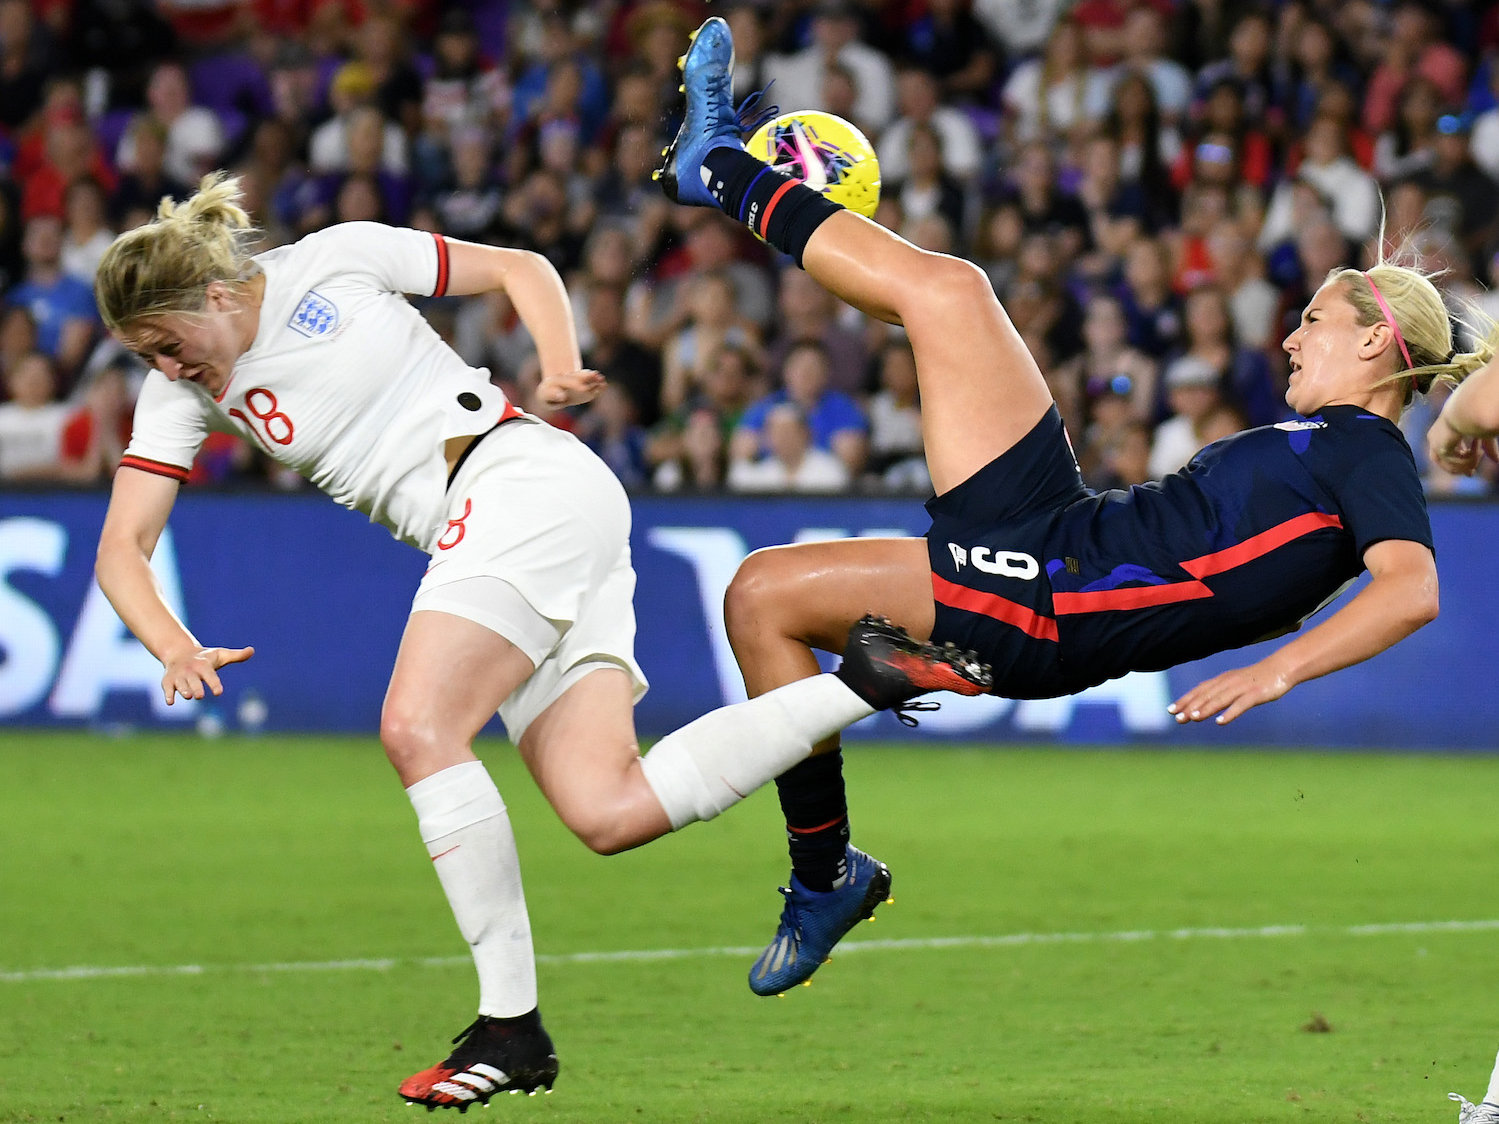 Nutmegs, hair pulling, and a spectacular golazo: the USWNT's first big test before the 2020 Olympics had it all